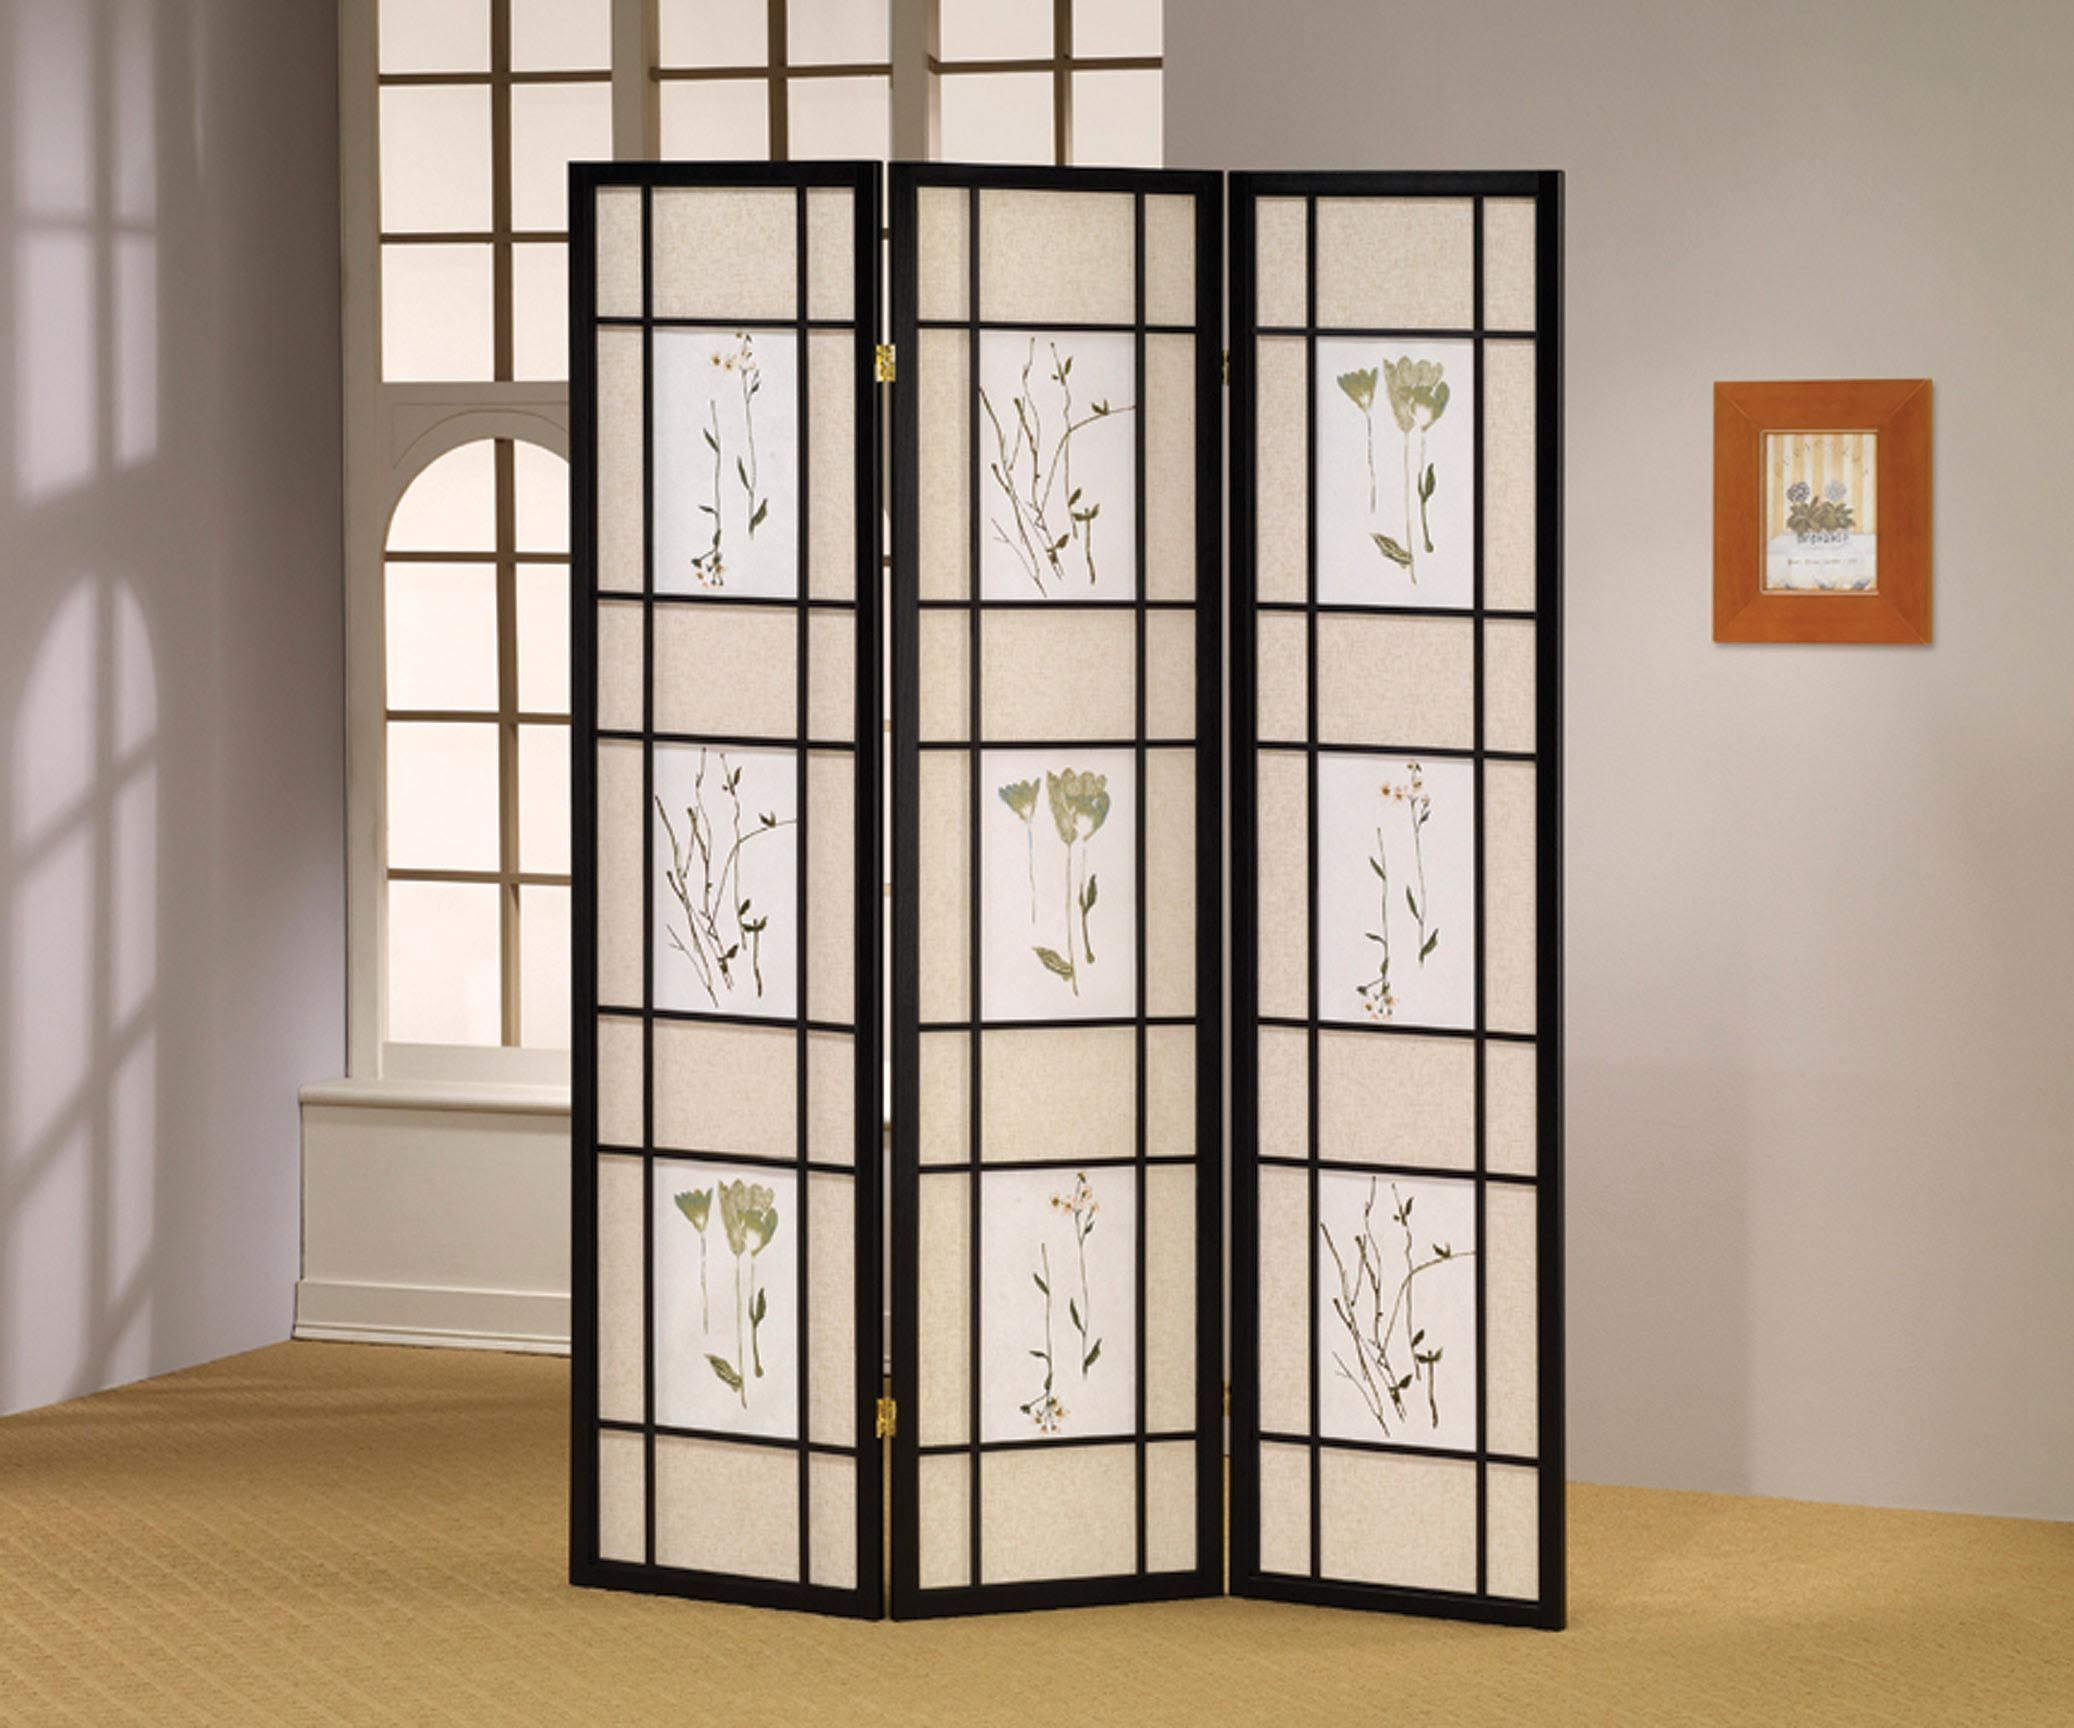 Accordion Curtain Room Dividers Panel Room Divider Room Screen